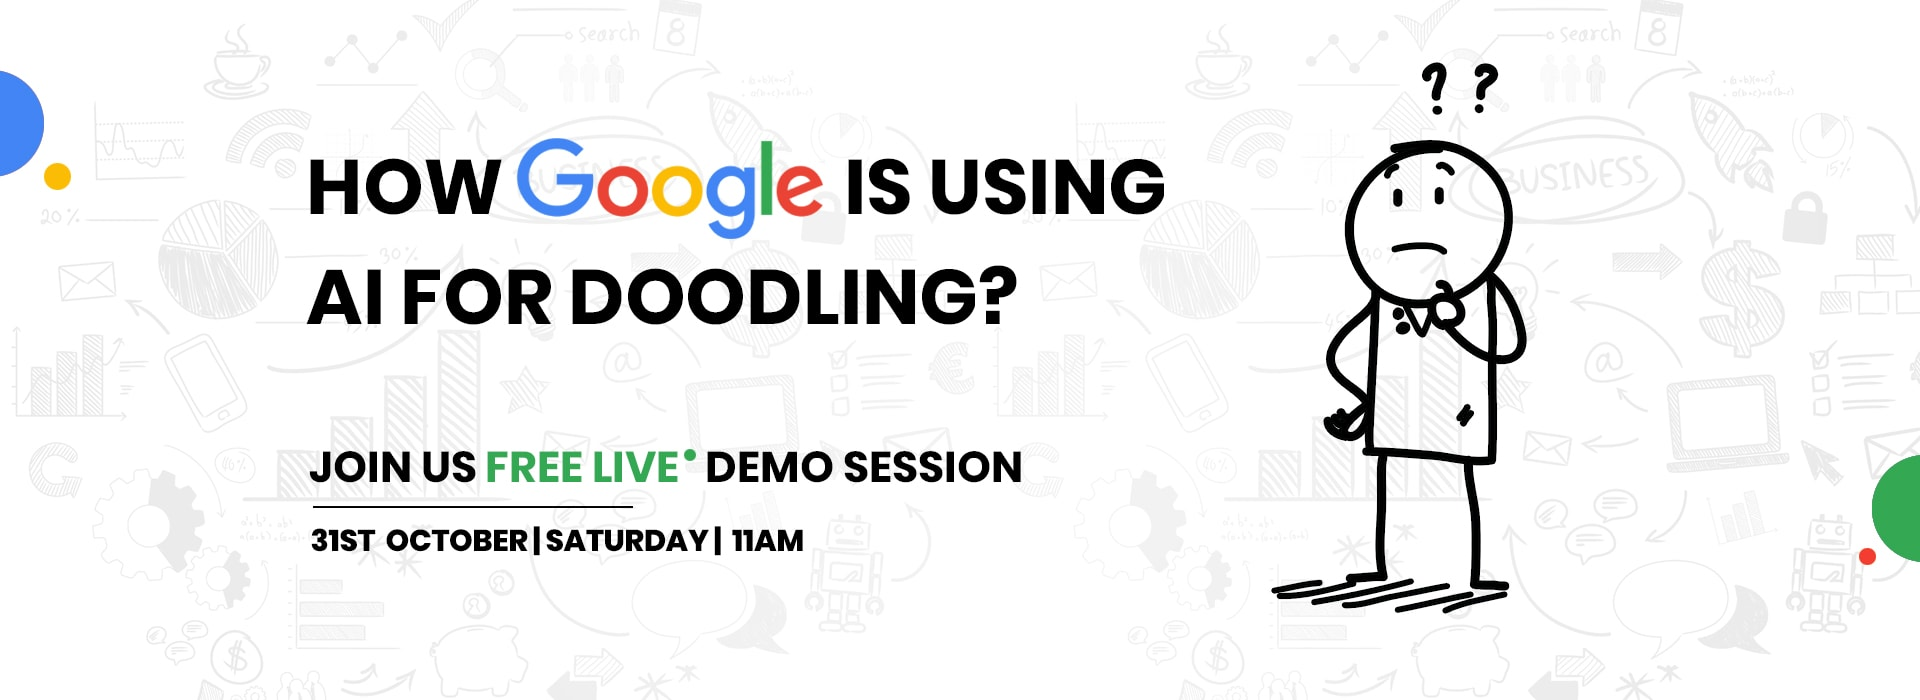 Join us free live demo session on AI